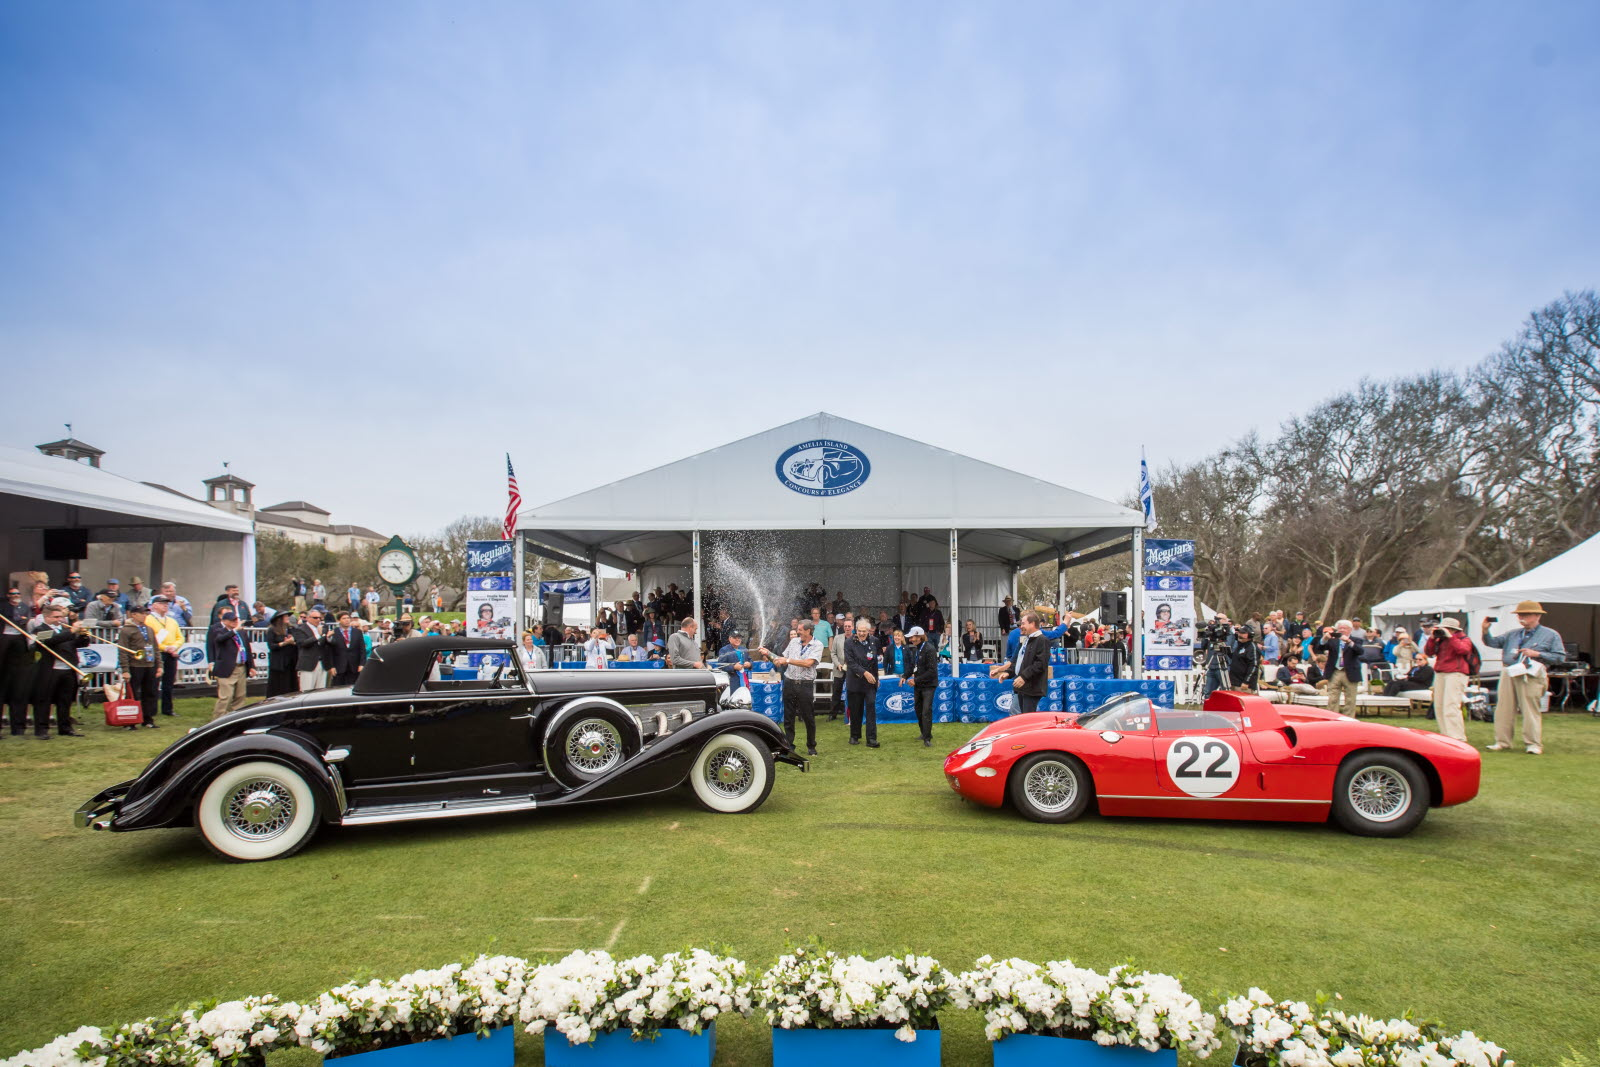 Best in show winners at the 23rd annual Amelia Island Concours d'Elegance, 1929 Duesenberg J/SJ Convertible and 1963 Ferrari 250/275P. [Photo courtesy Deremer Studios LLC]